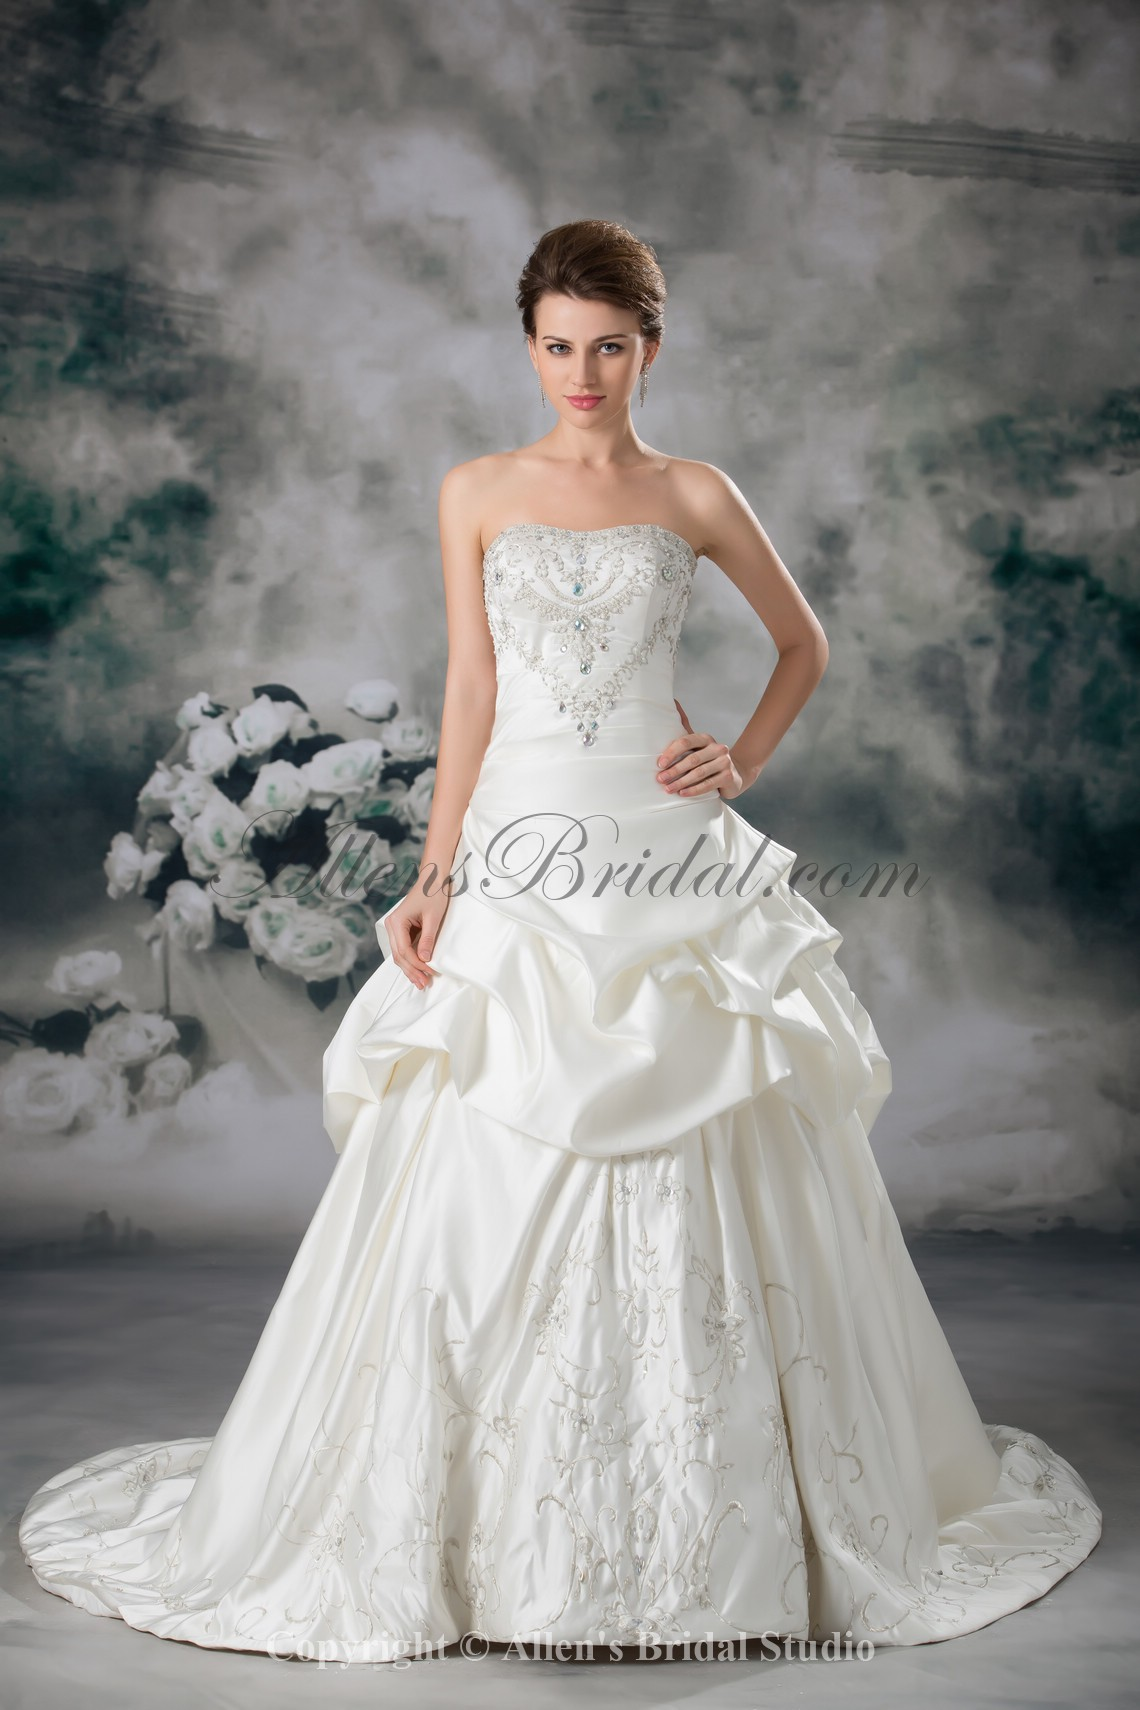 /975-7813/satin-strapless-neckline-sweep-train-ball-gown-embroidered-wedding-dress.jpg